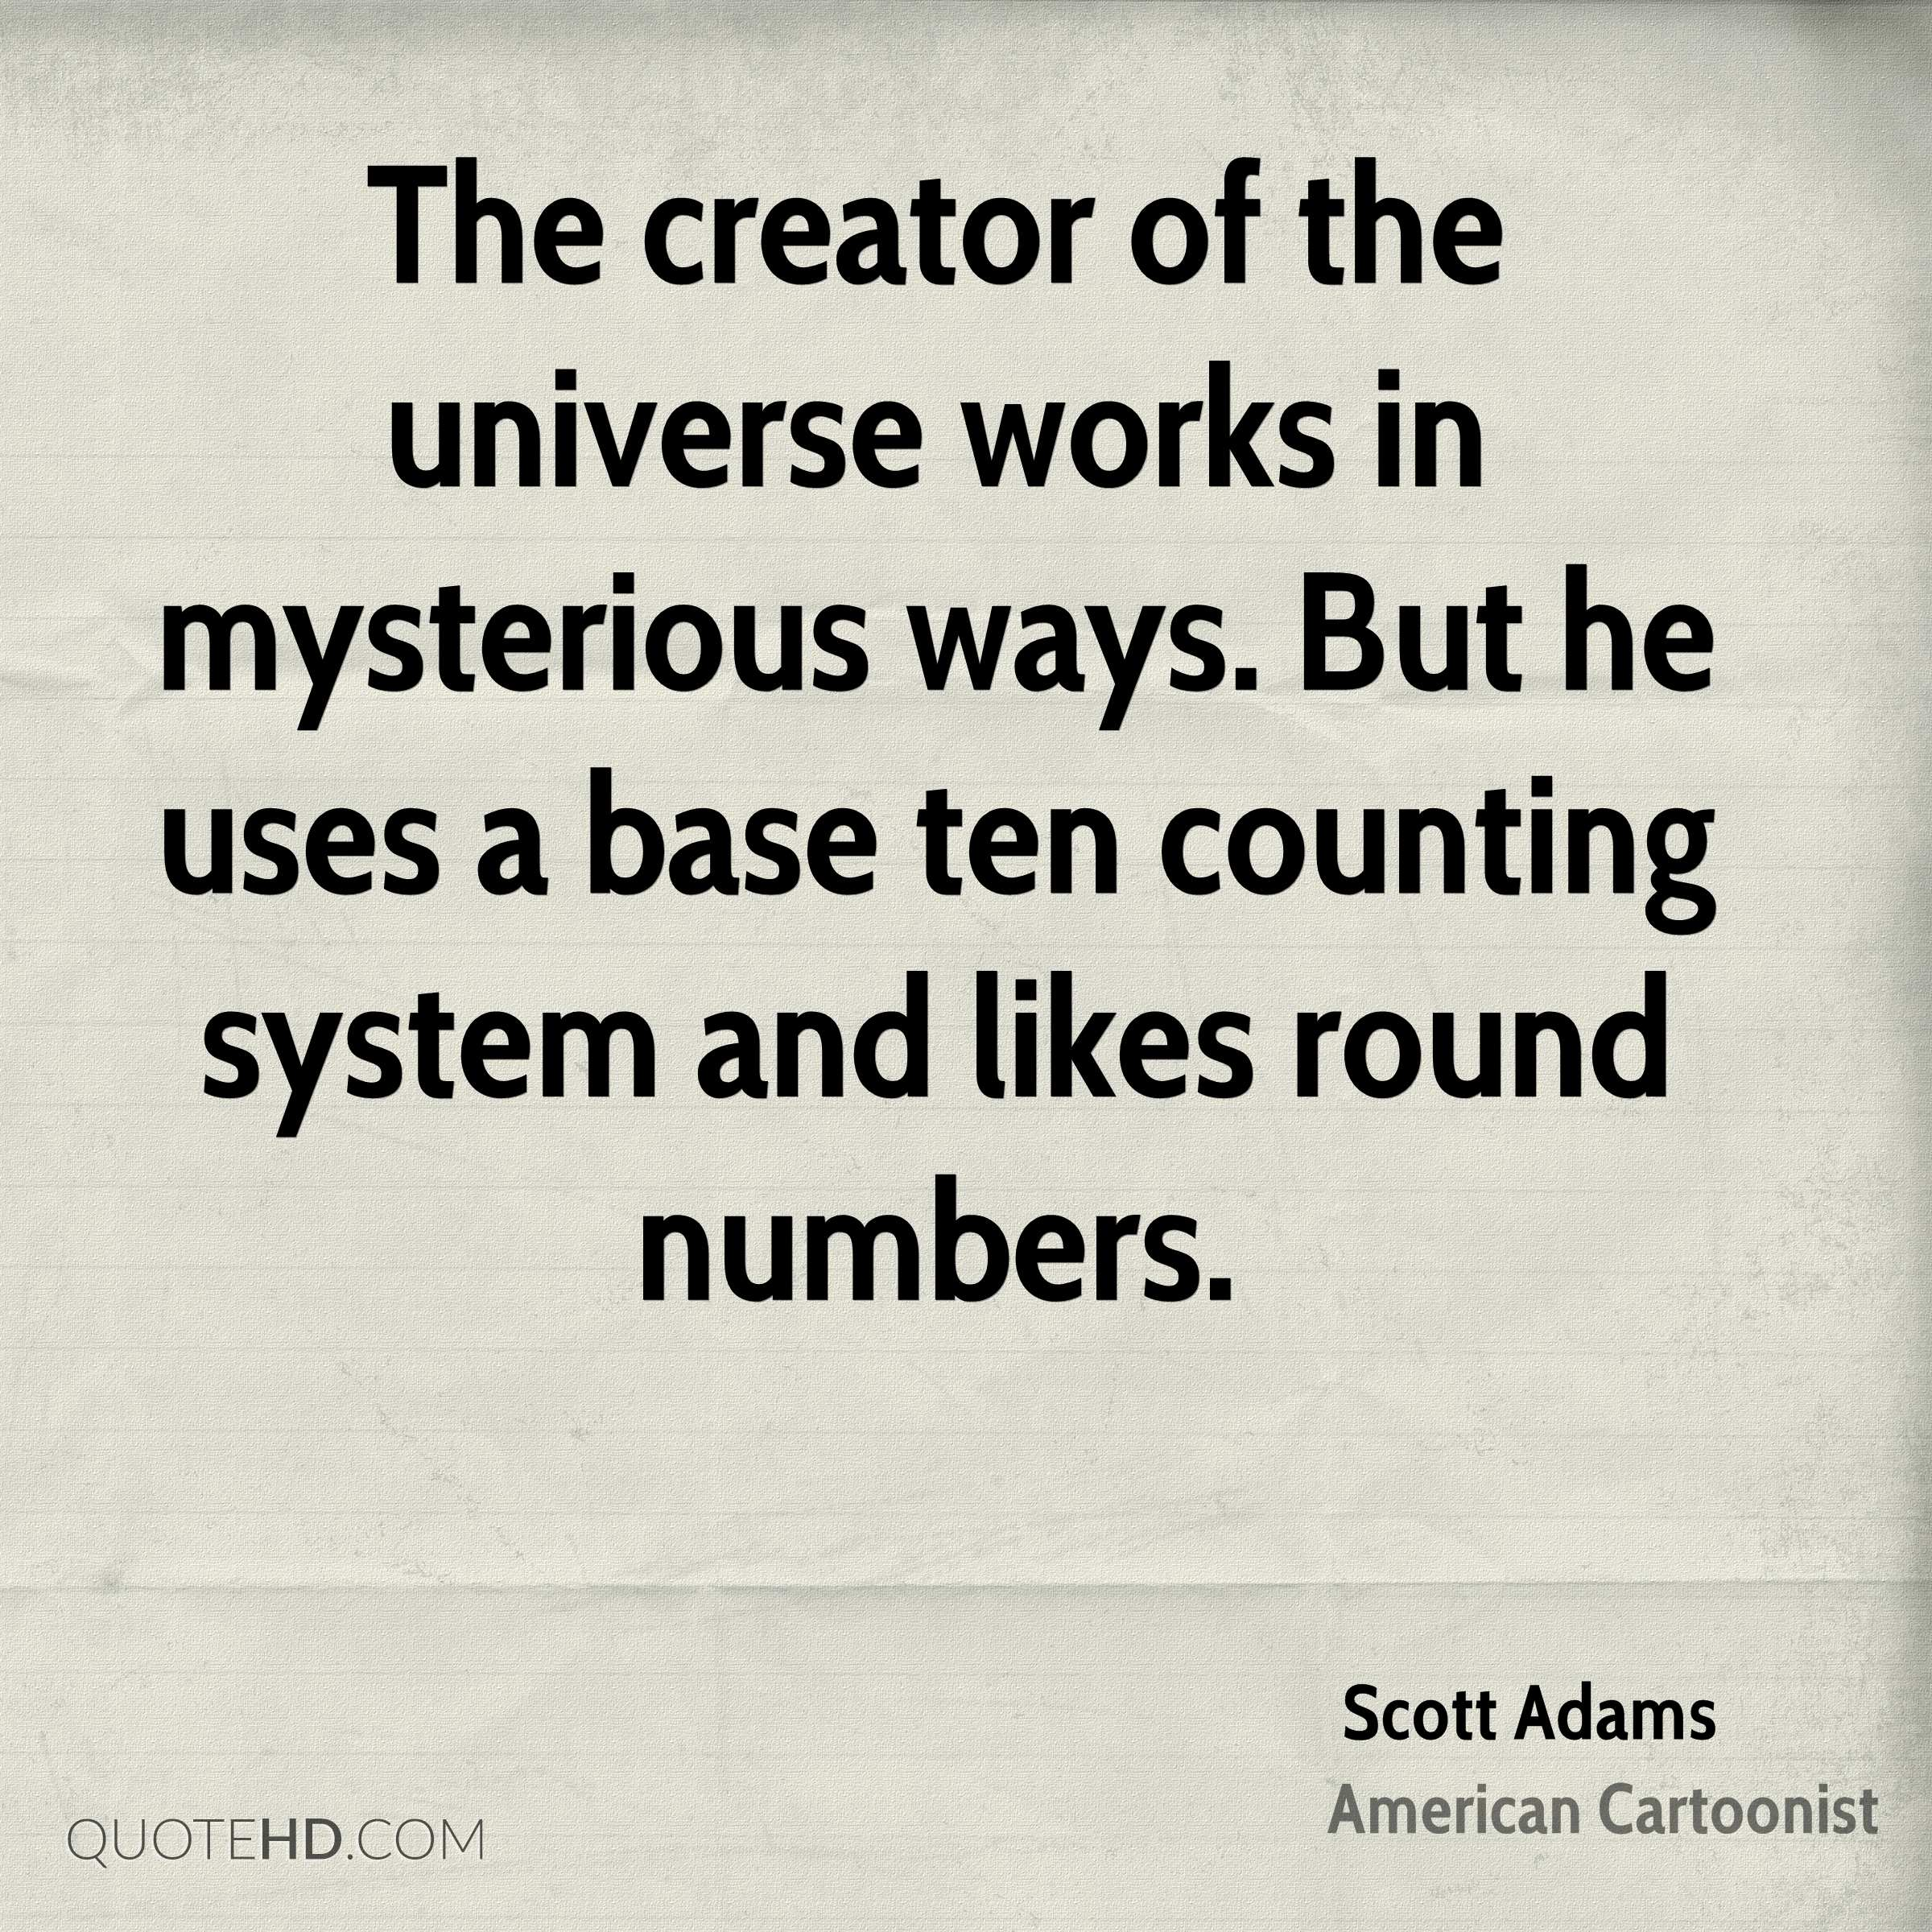 The creator of the universe works in mysterious ways. But he uses a base ten counting system and likes round numbers.